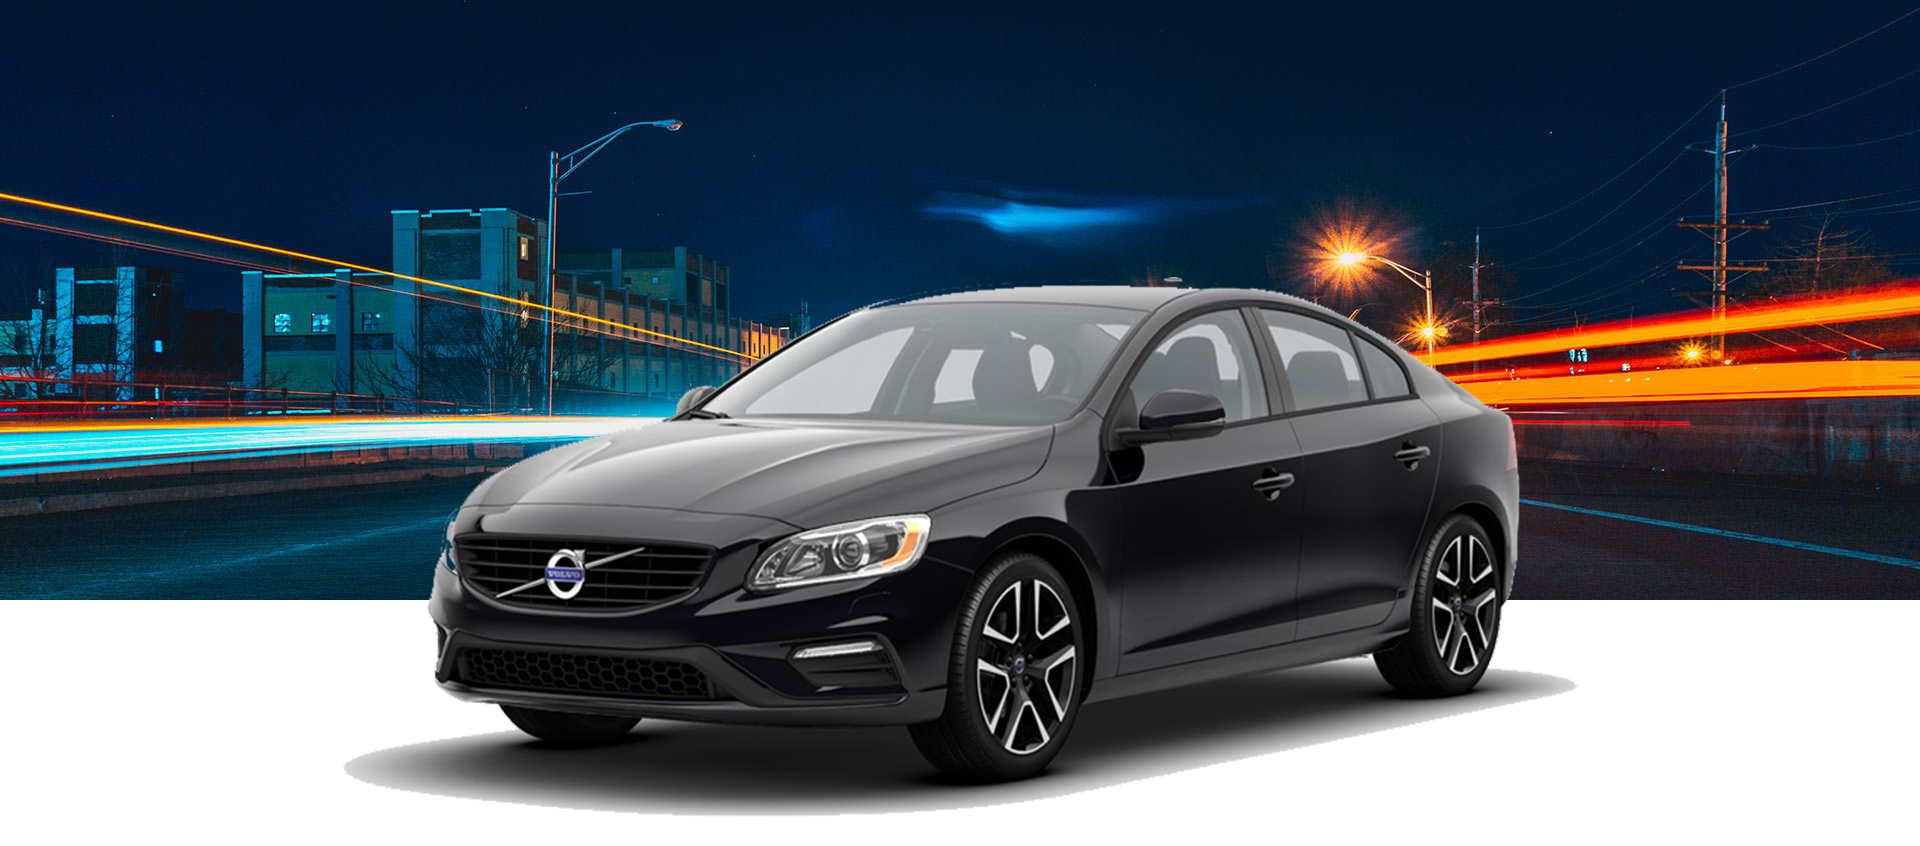 2018 Volvo S60 Information | Lovering Volvo Cars l Concord, NH